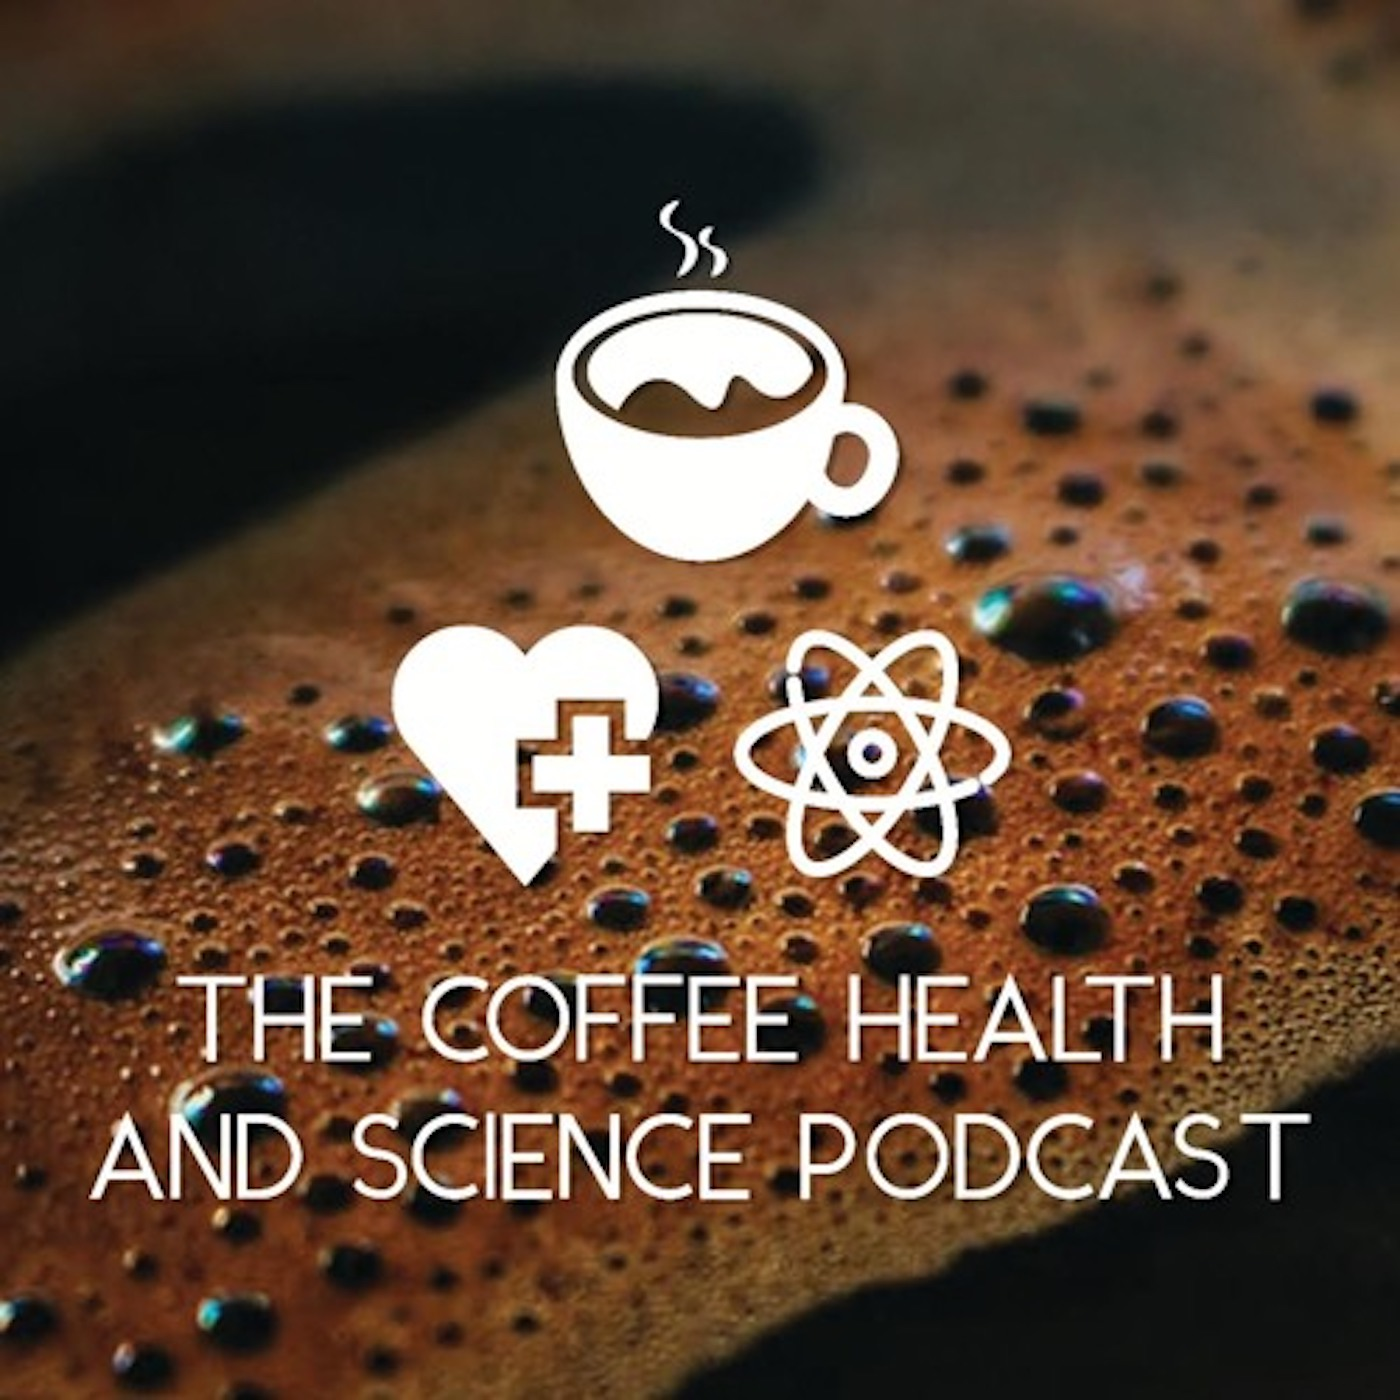 Preventing Dementia, Alzheimer's, Cognitive Decline and Coffee, with Dr. Sanjiv Chopra